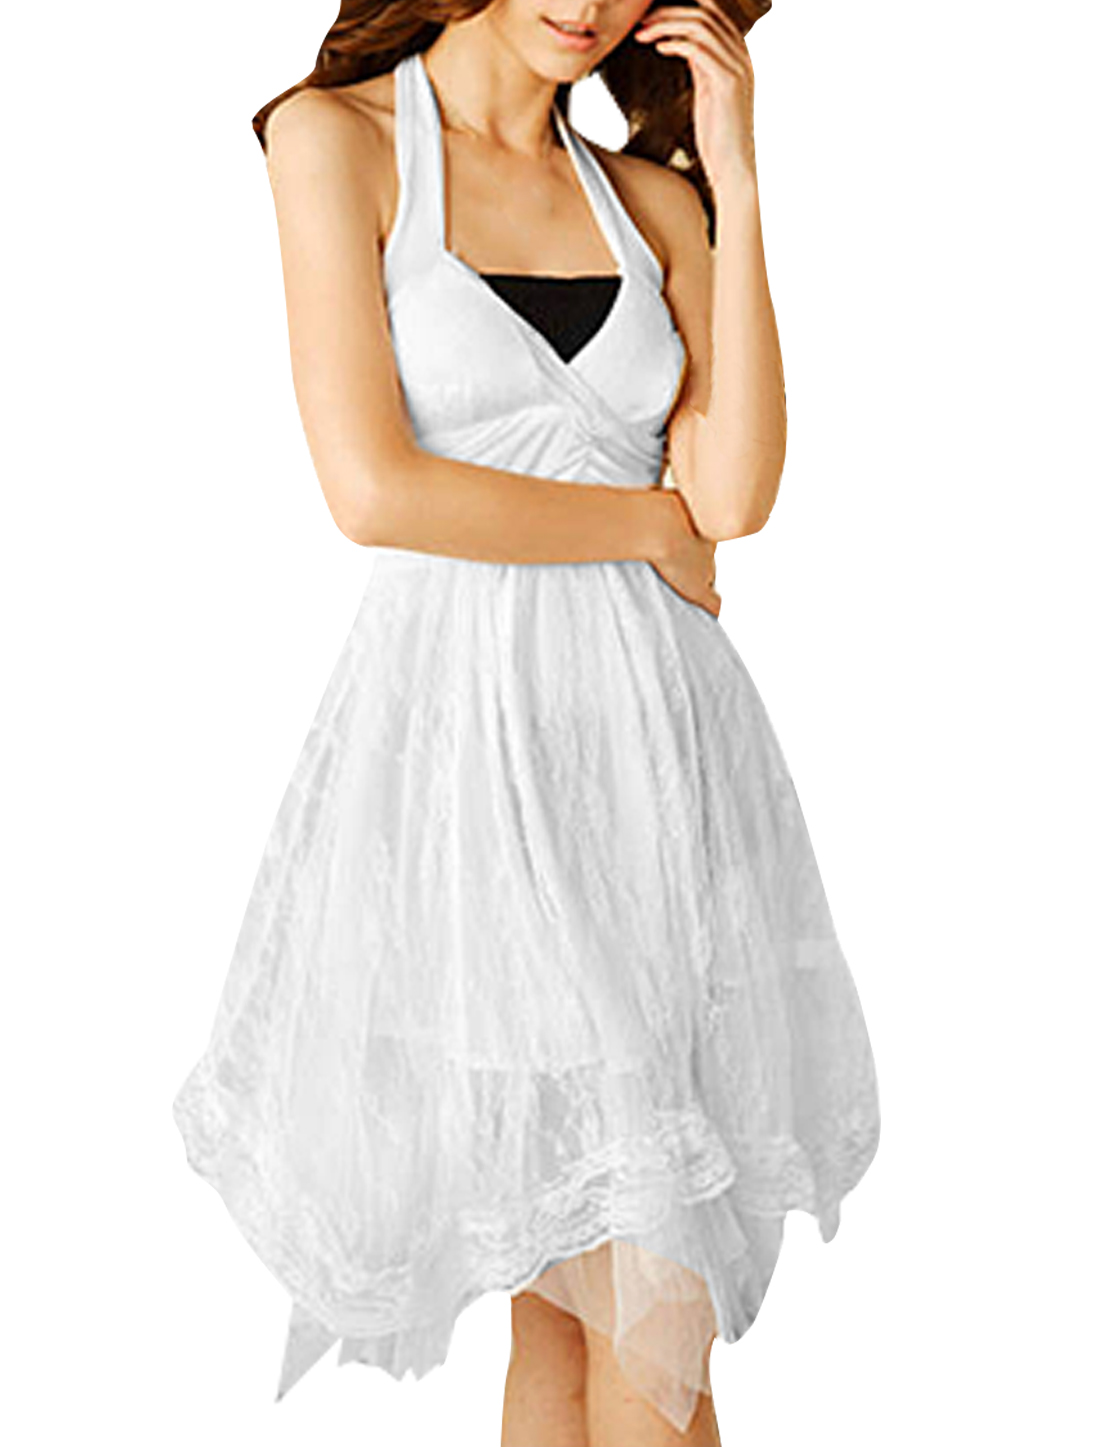 Women Deep V Neck White Halter Style White Dress M